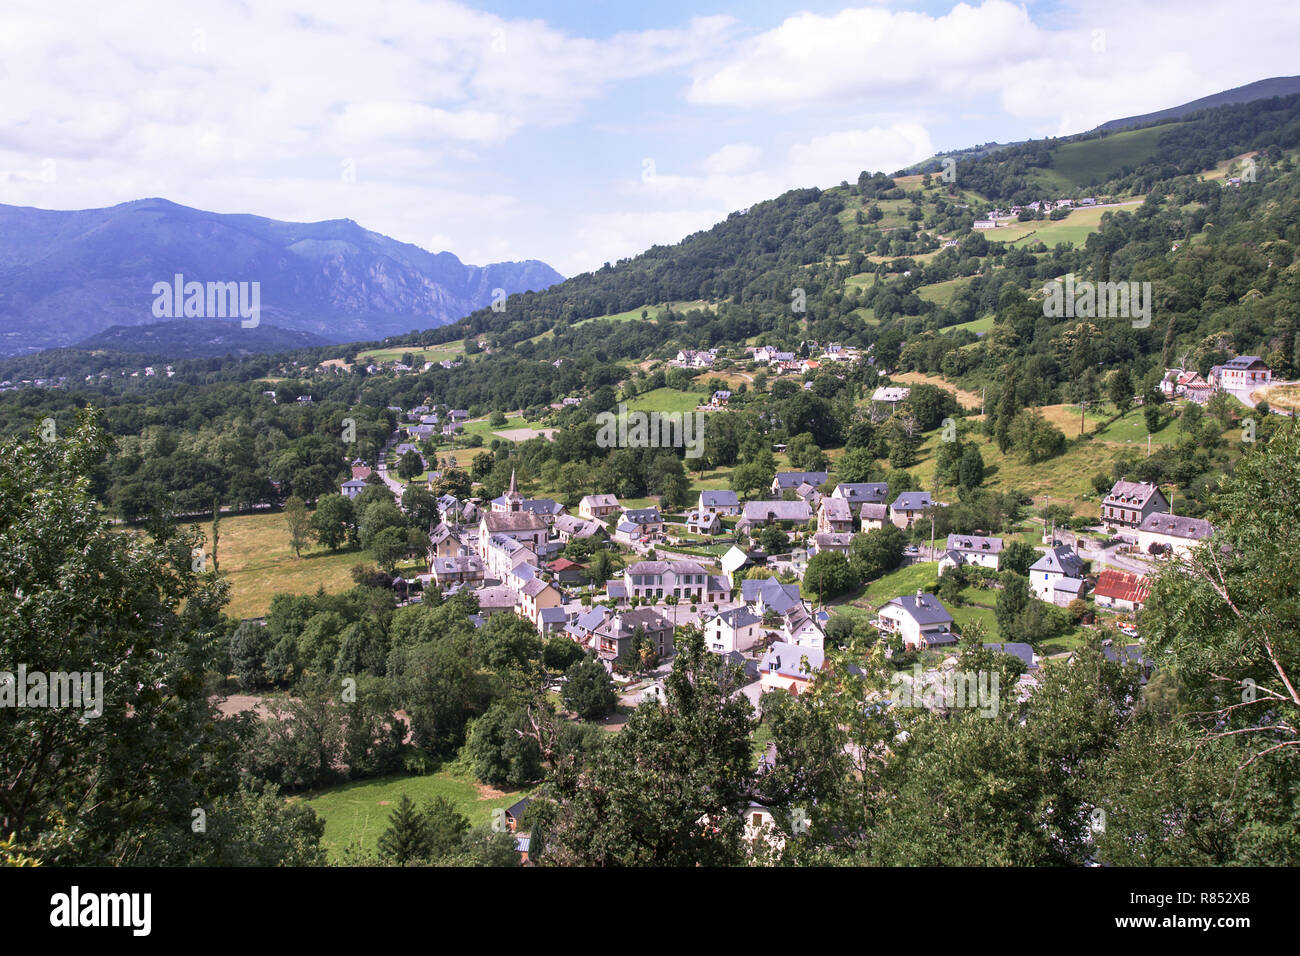 The village of Baucens in the Pyrenees. Department of Hautes-Pyrenees.France. - Stock Image